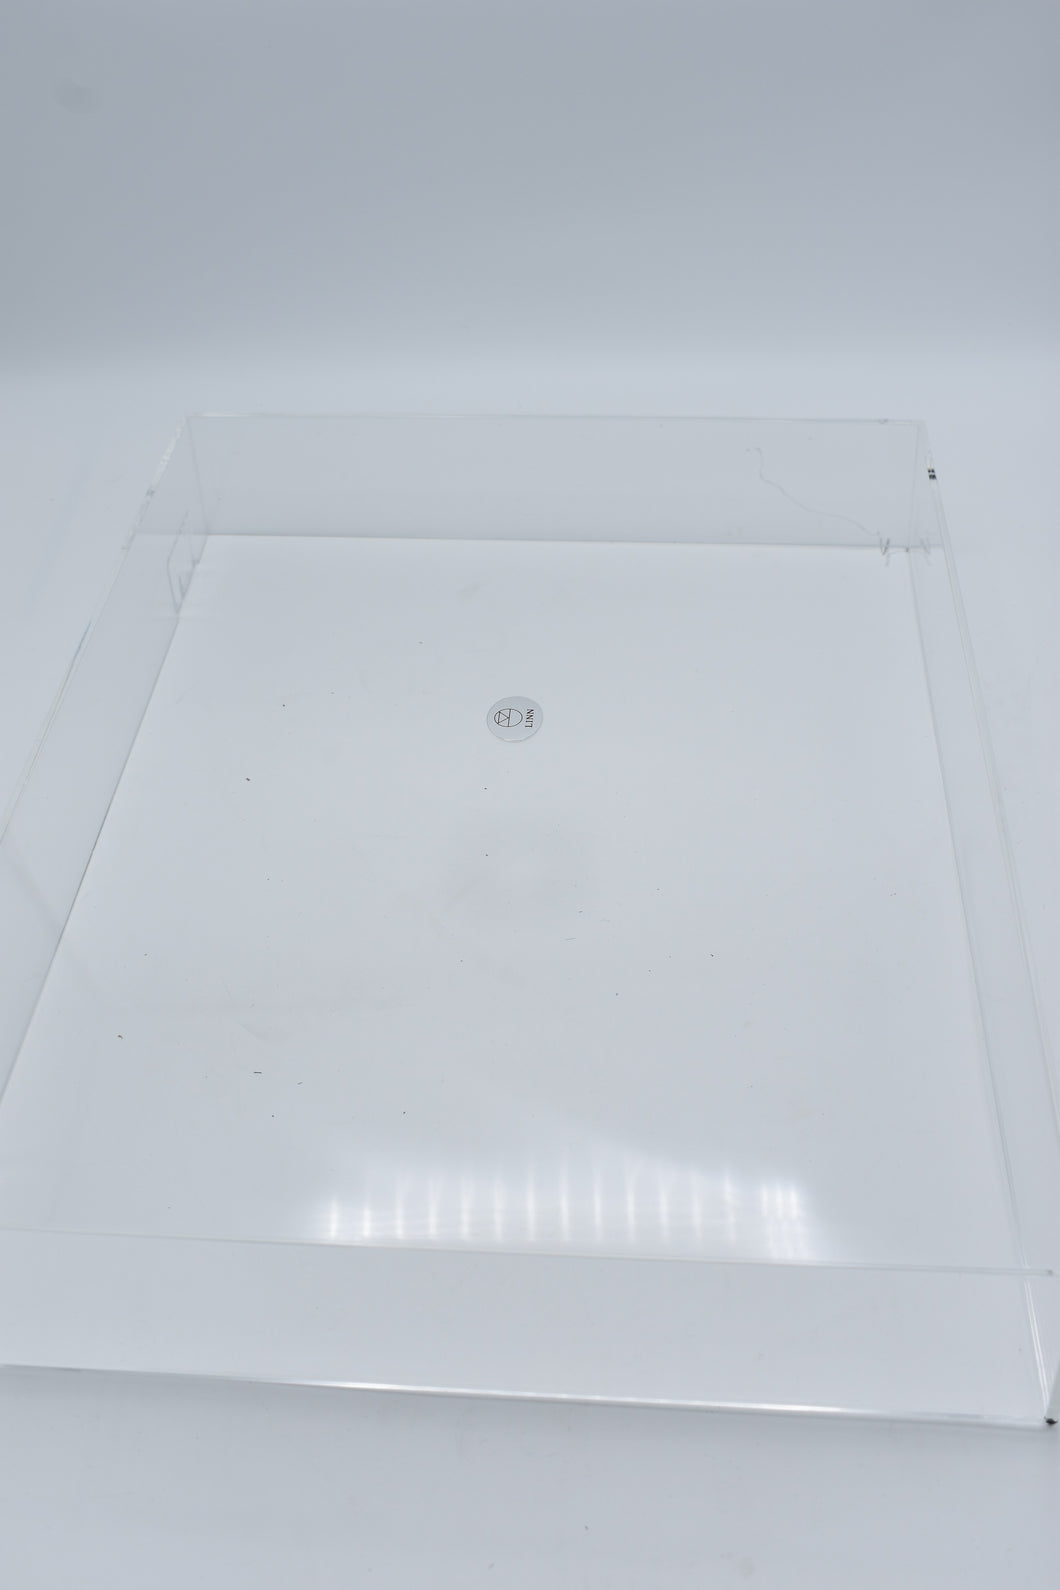 Linn LP12 Clear Lid (2019) (Preowned, Ref 001076)